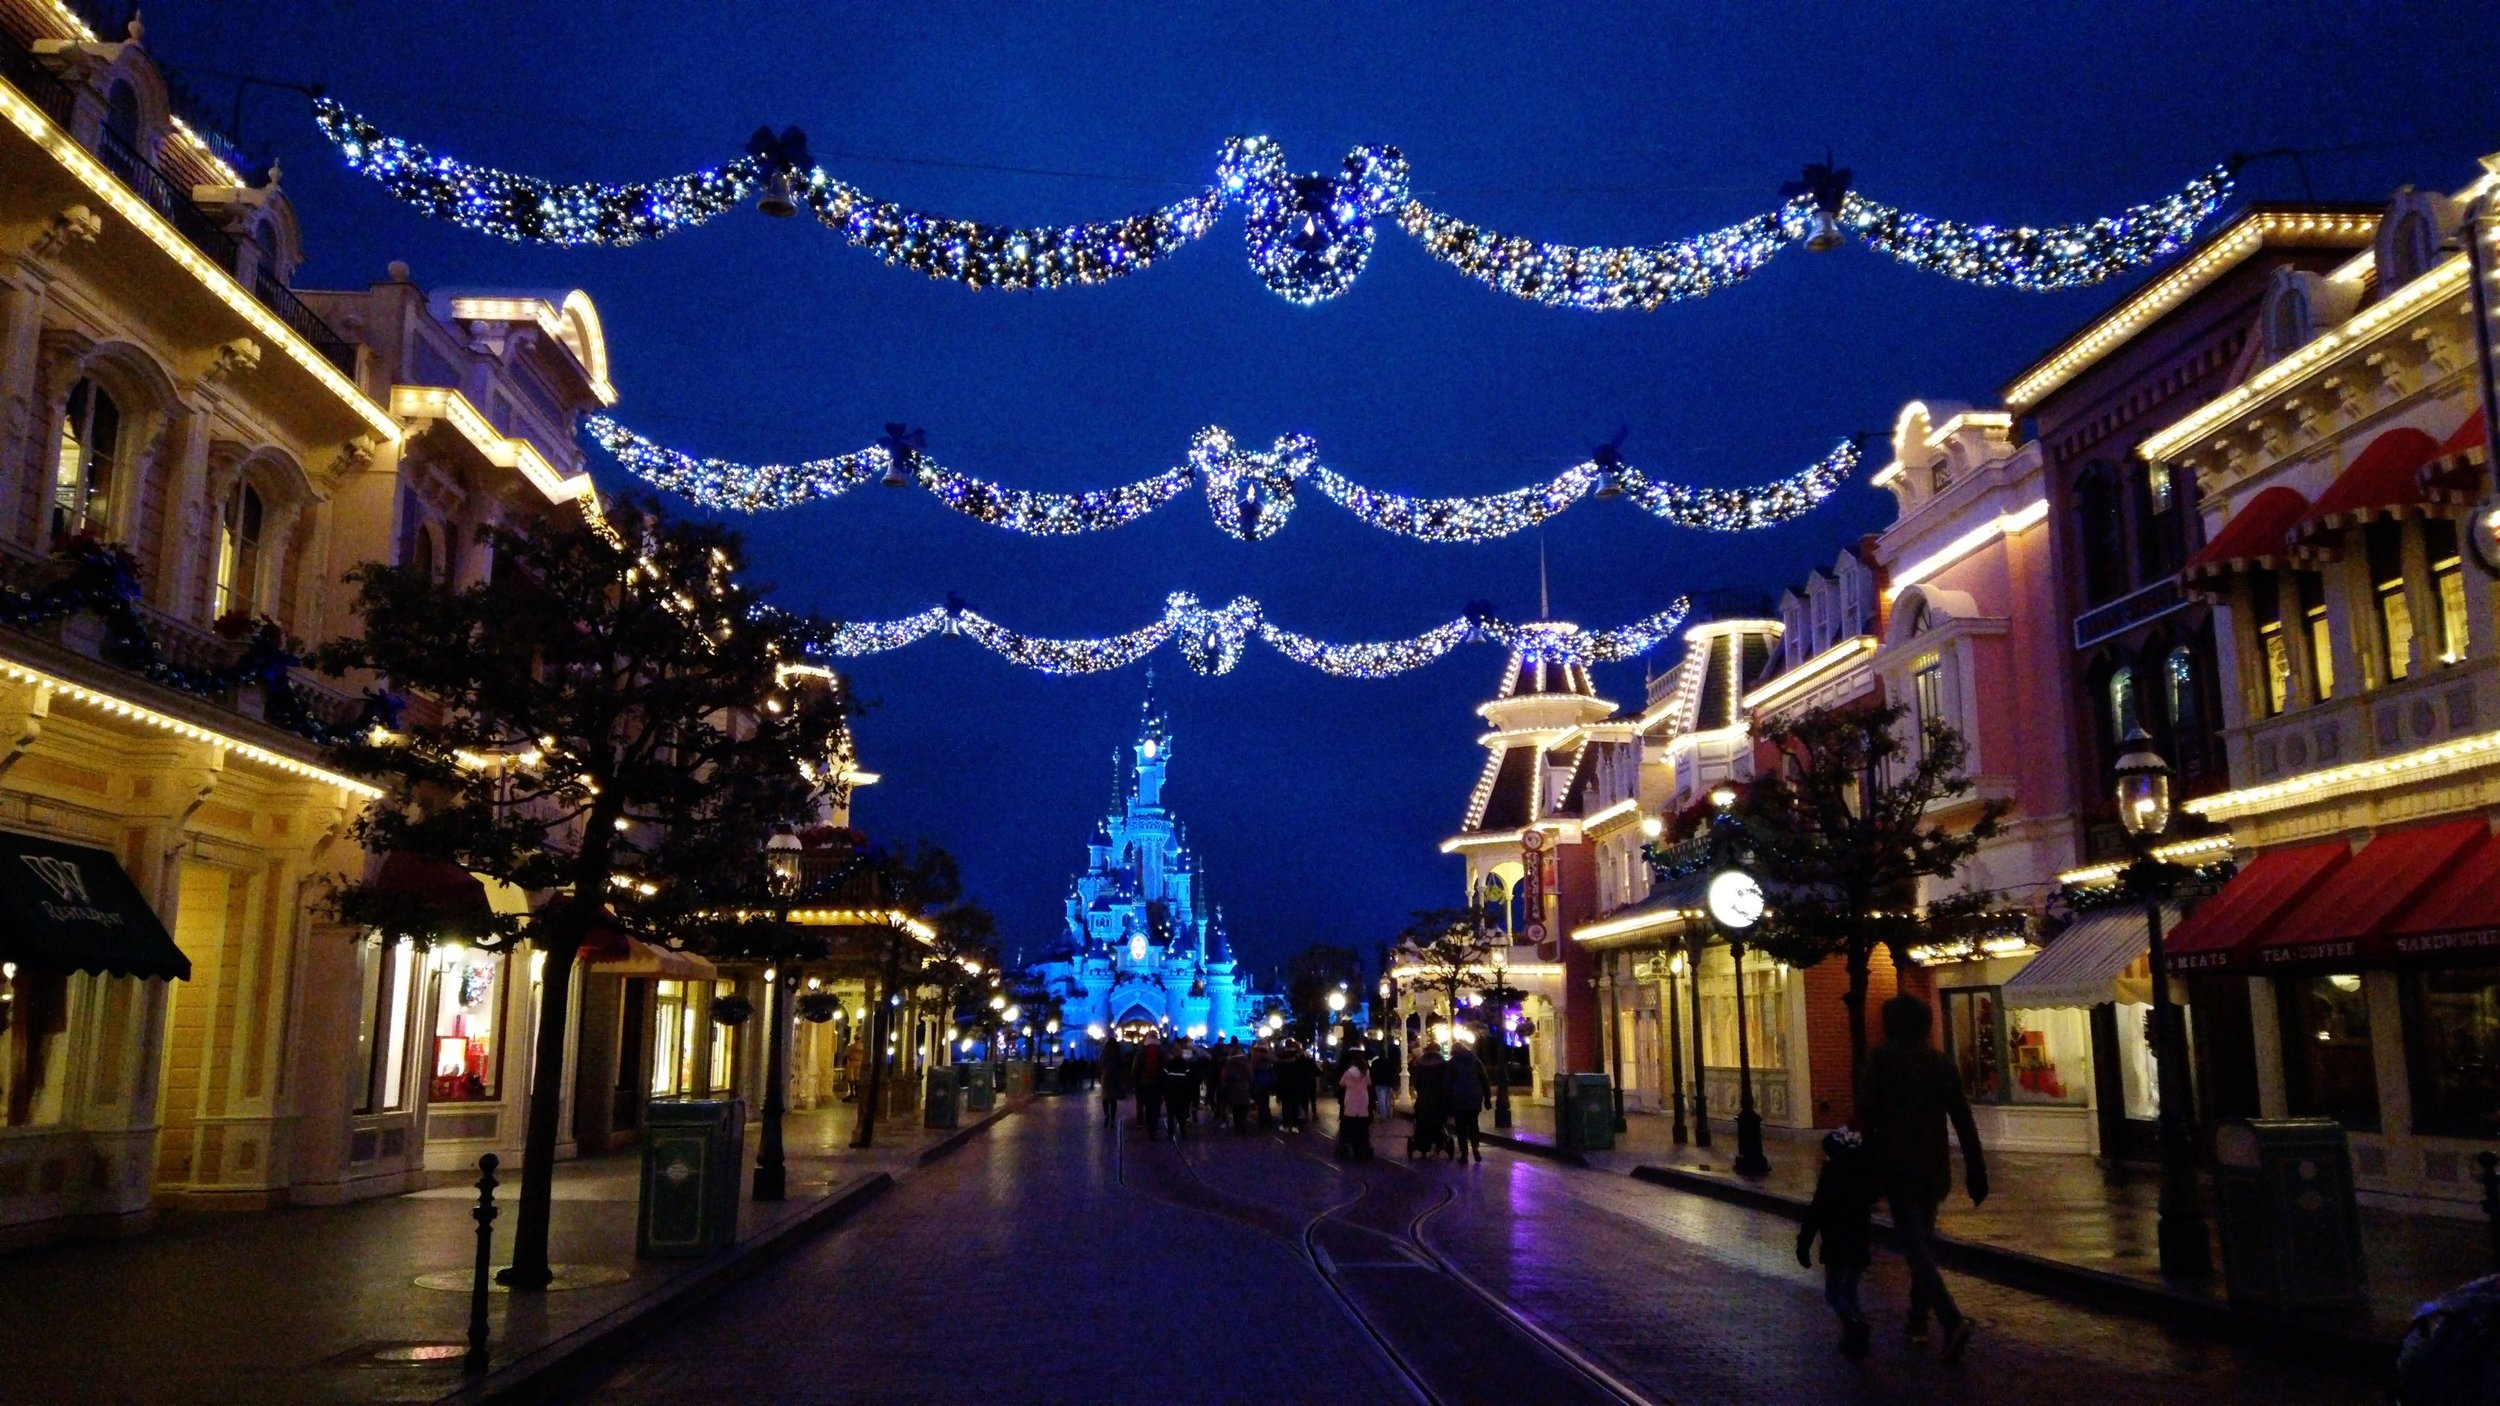 When Does Disneyland Decorate For Christmas.A Last Look At The Christmas Decorations On Main Street Usa